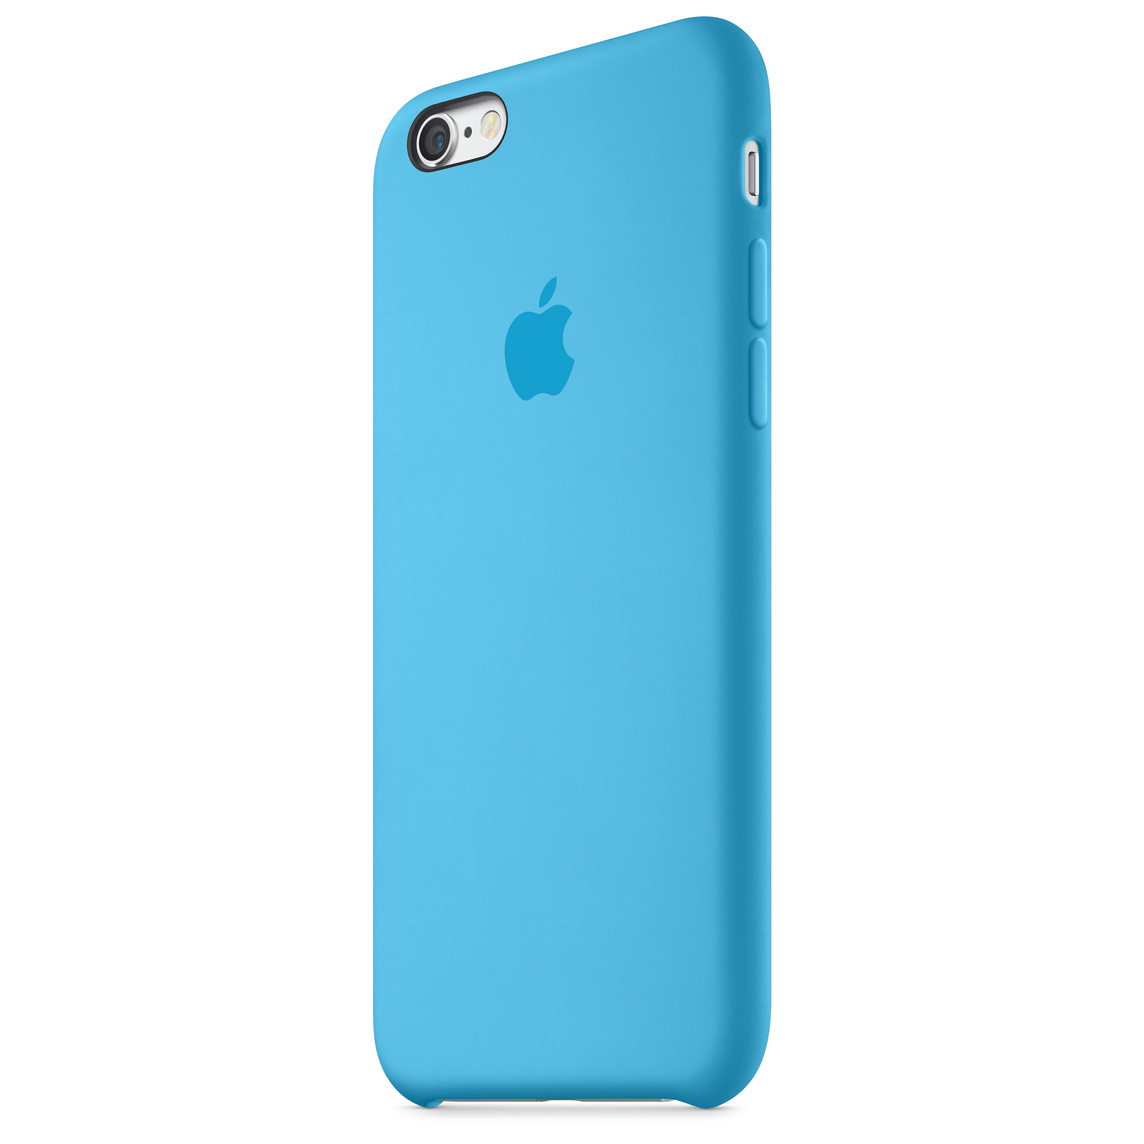 official photos da03a 3e7f1 iPhone 6 / 6s Silicone Case - Blue